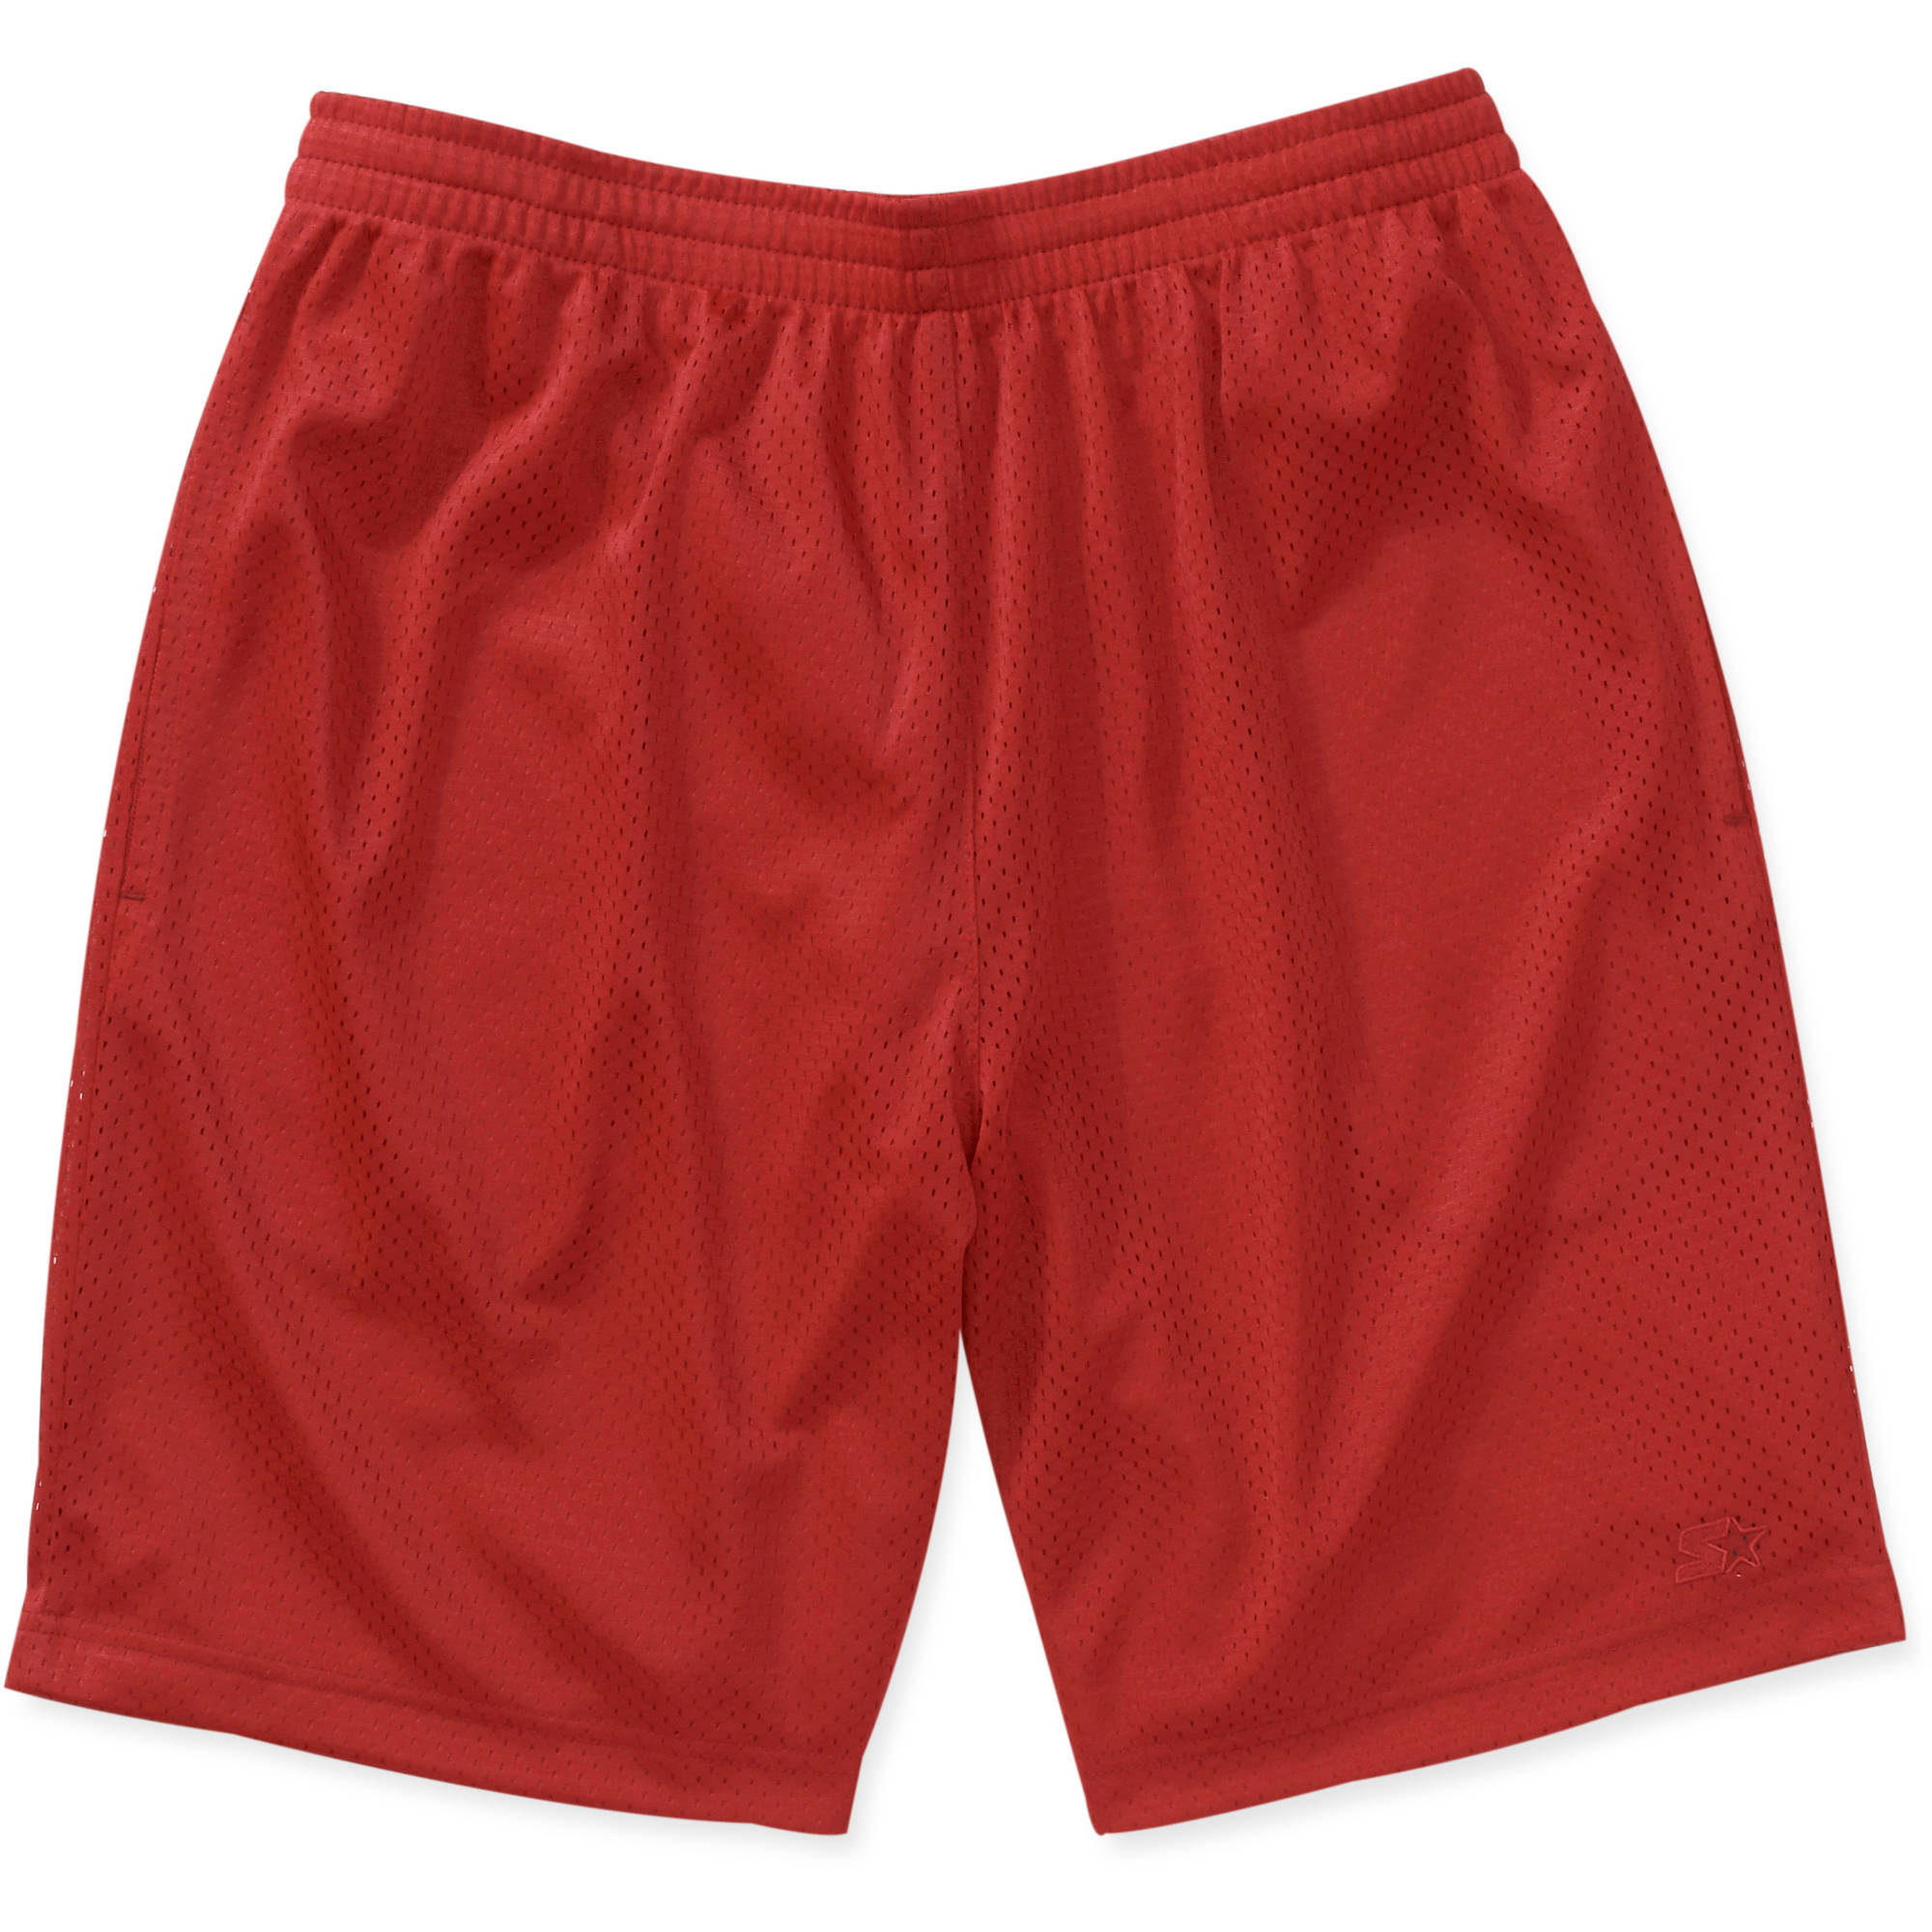 Starter Men's Active Dri-Star Mesh Short